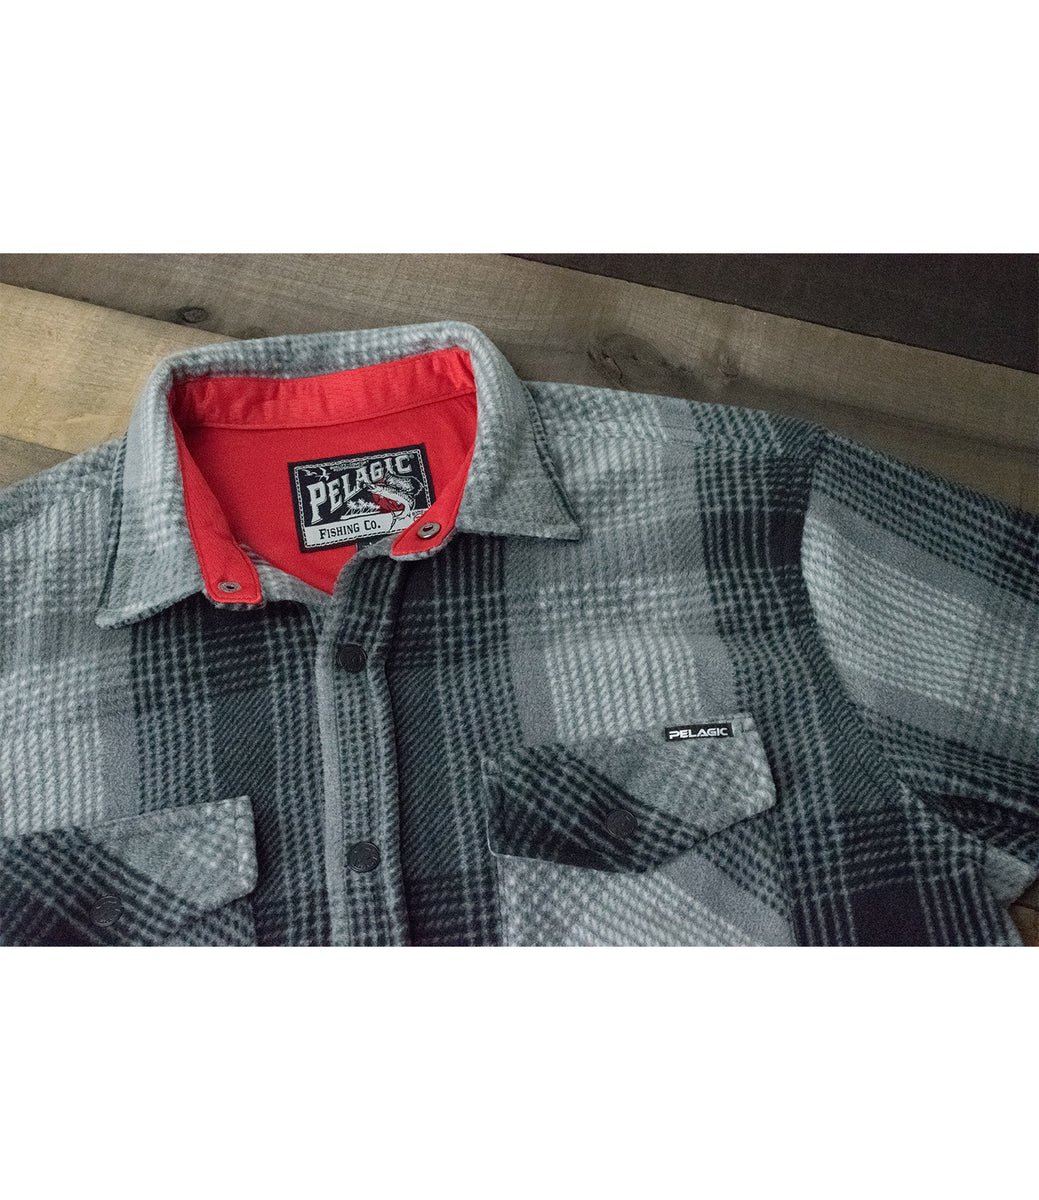 Quest Performance Flannel - Grey Big Image - 3